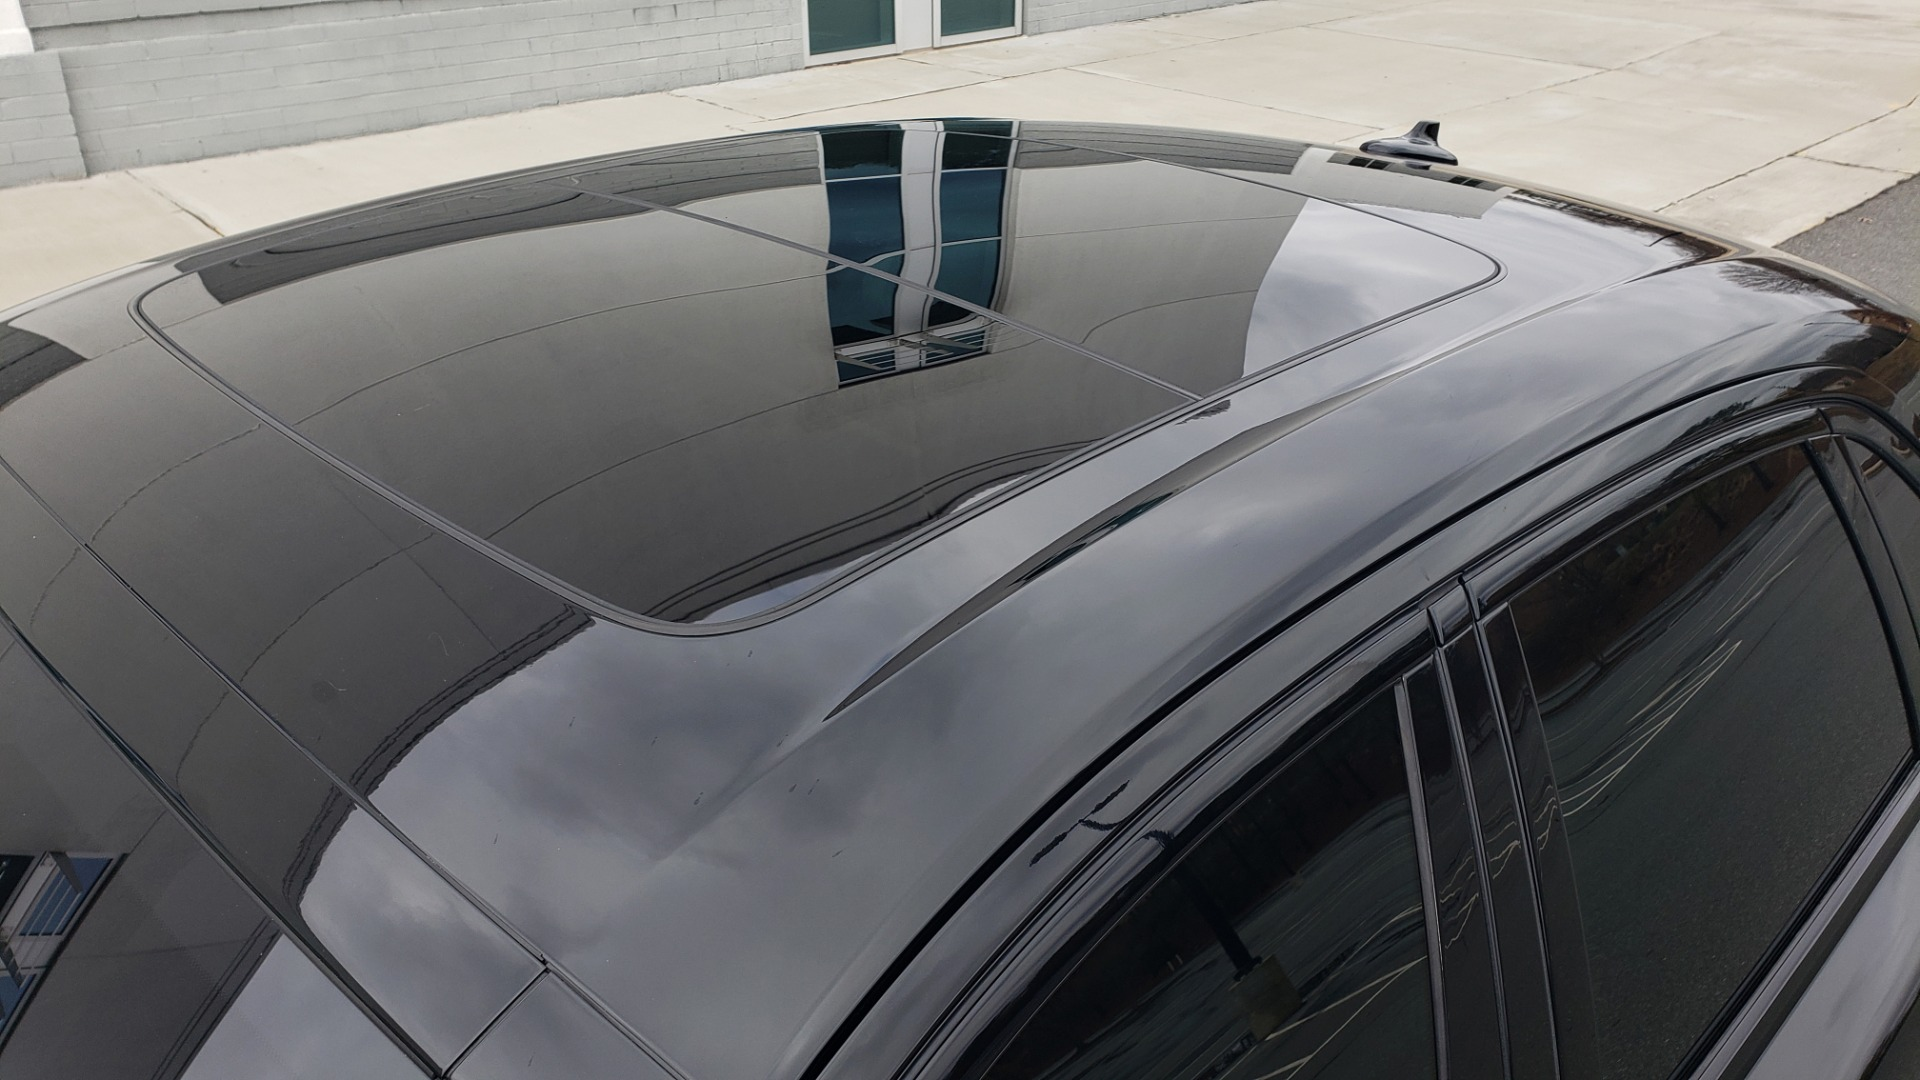 Used 2010 Rolls-Royce GHOST 6.6L TURBO V12 (563HP) / NAV / SUNROOF / SUICIDE DOORS for sale $89,000 at Formula Imports in Charlotte NC 28227 10